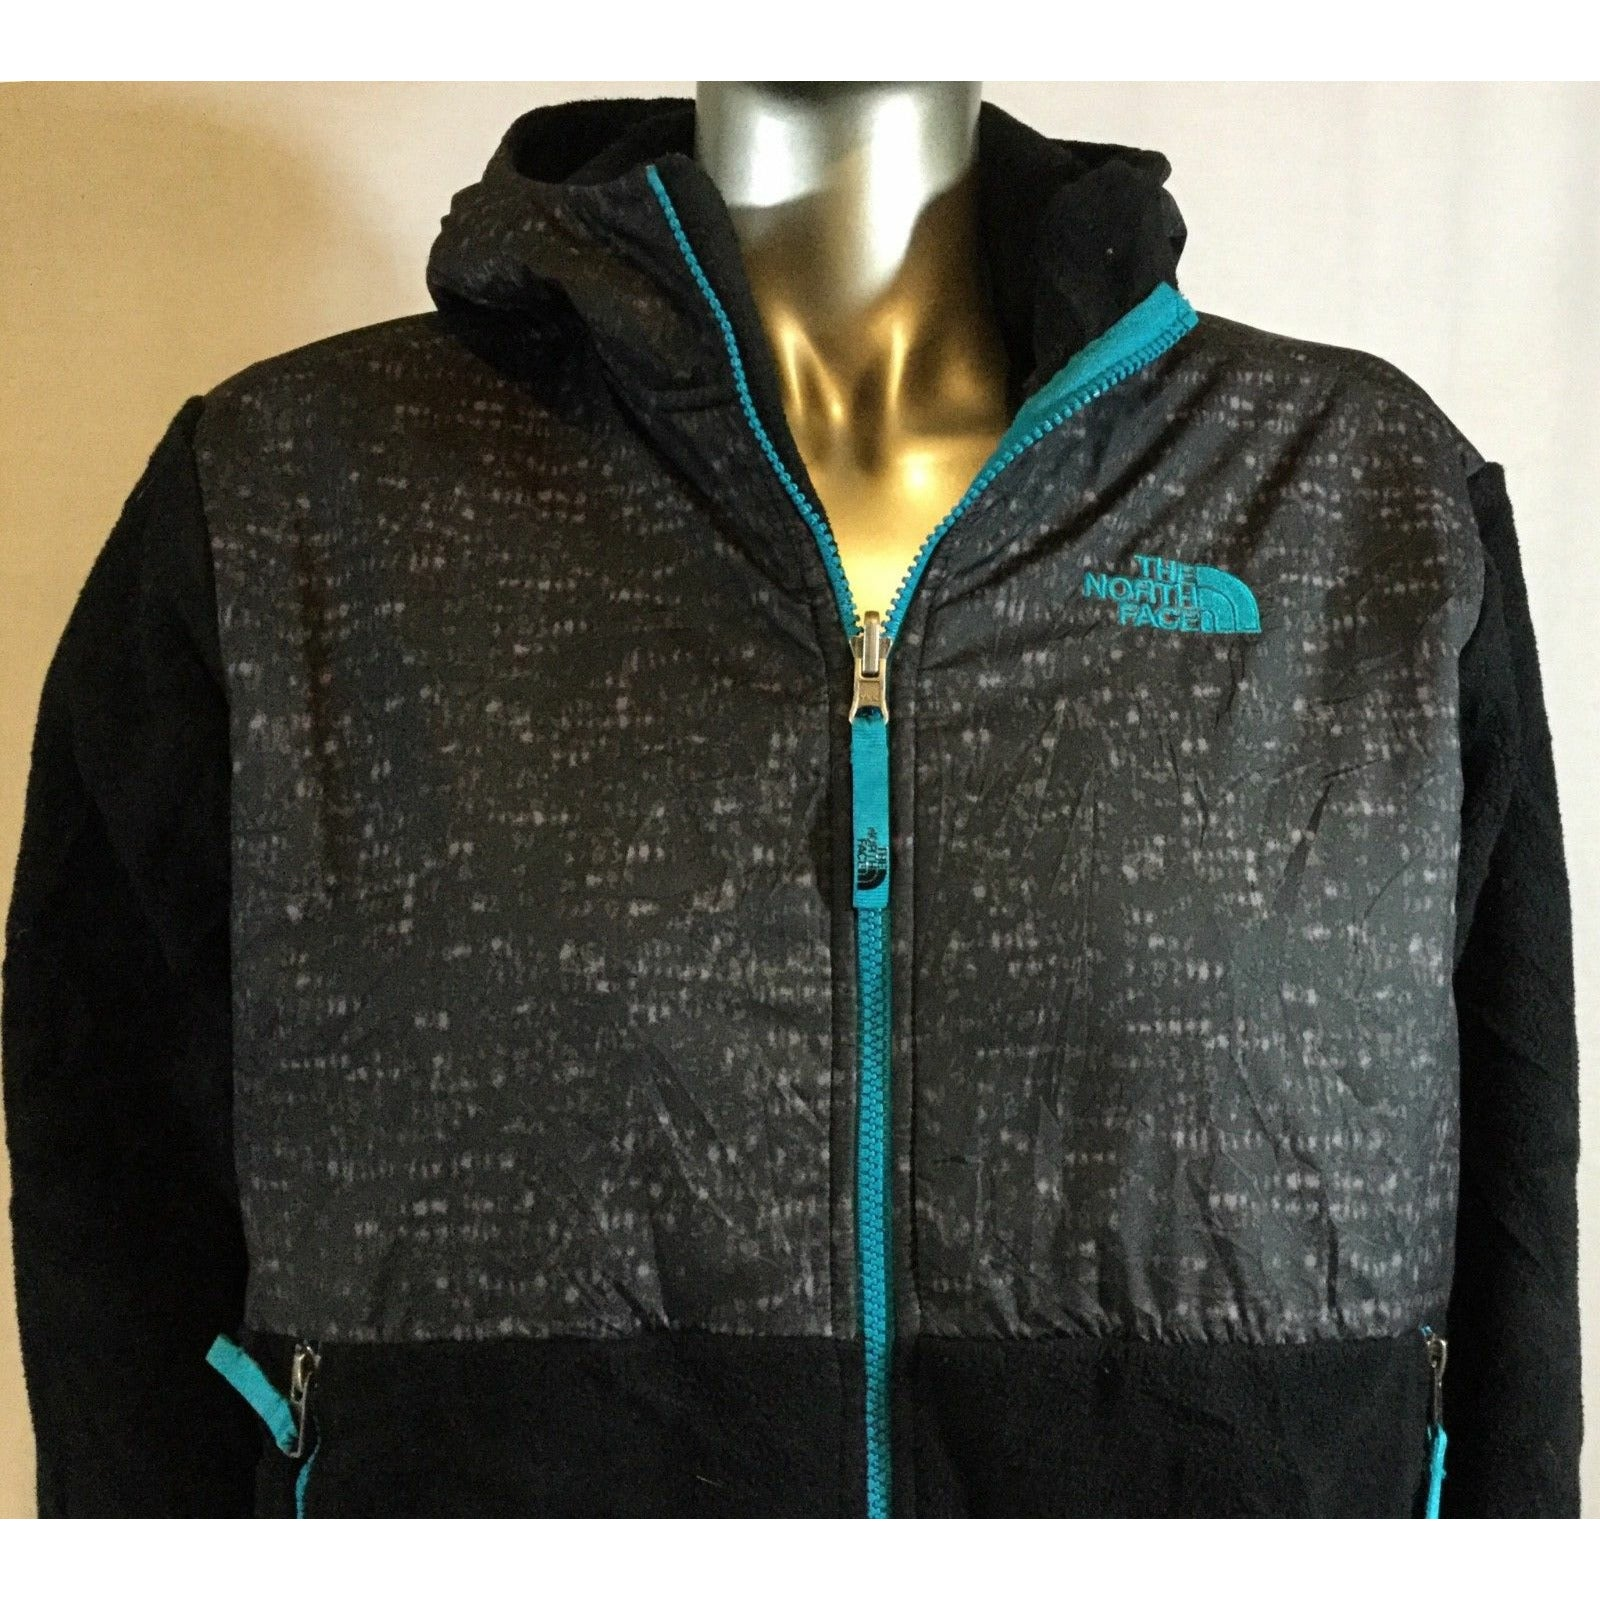 Women's, The North Face Jacket, Size XL, 18-20, Color Black and teal